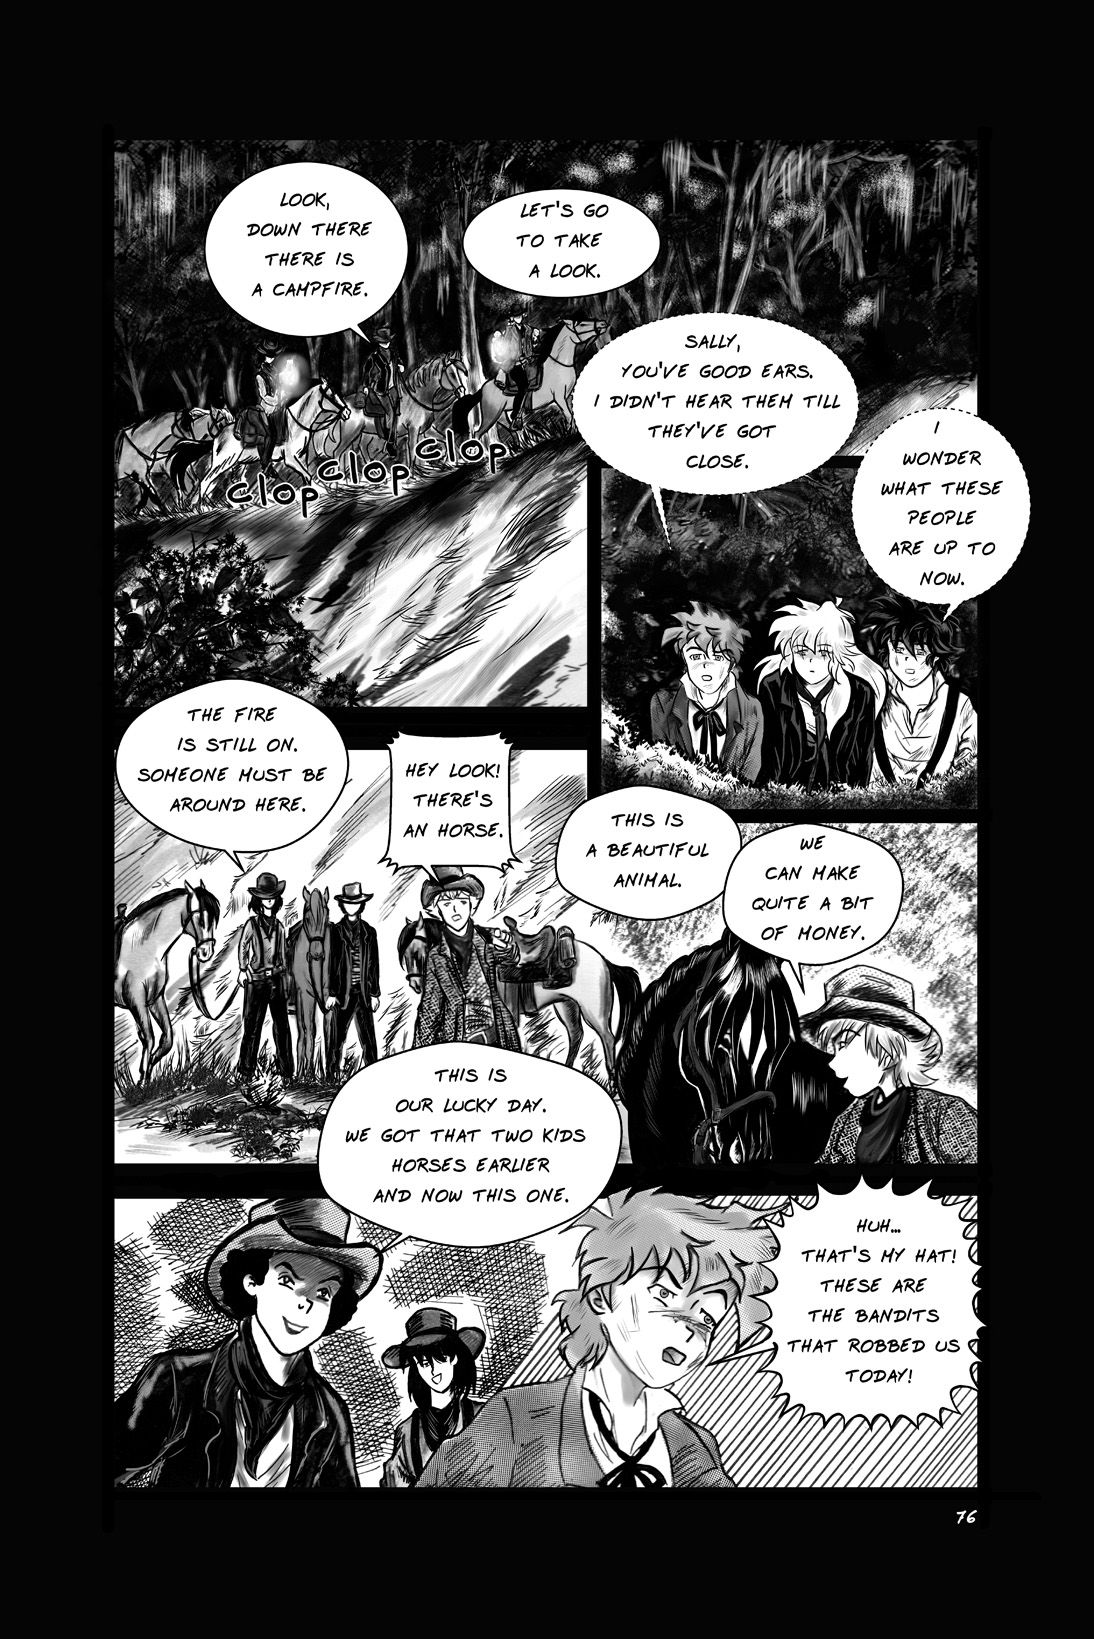 Page76 legends of the west